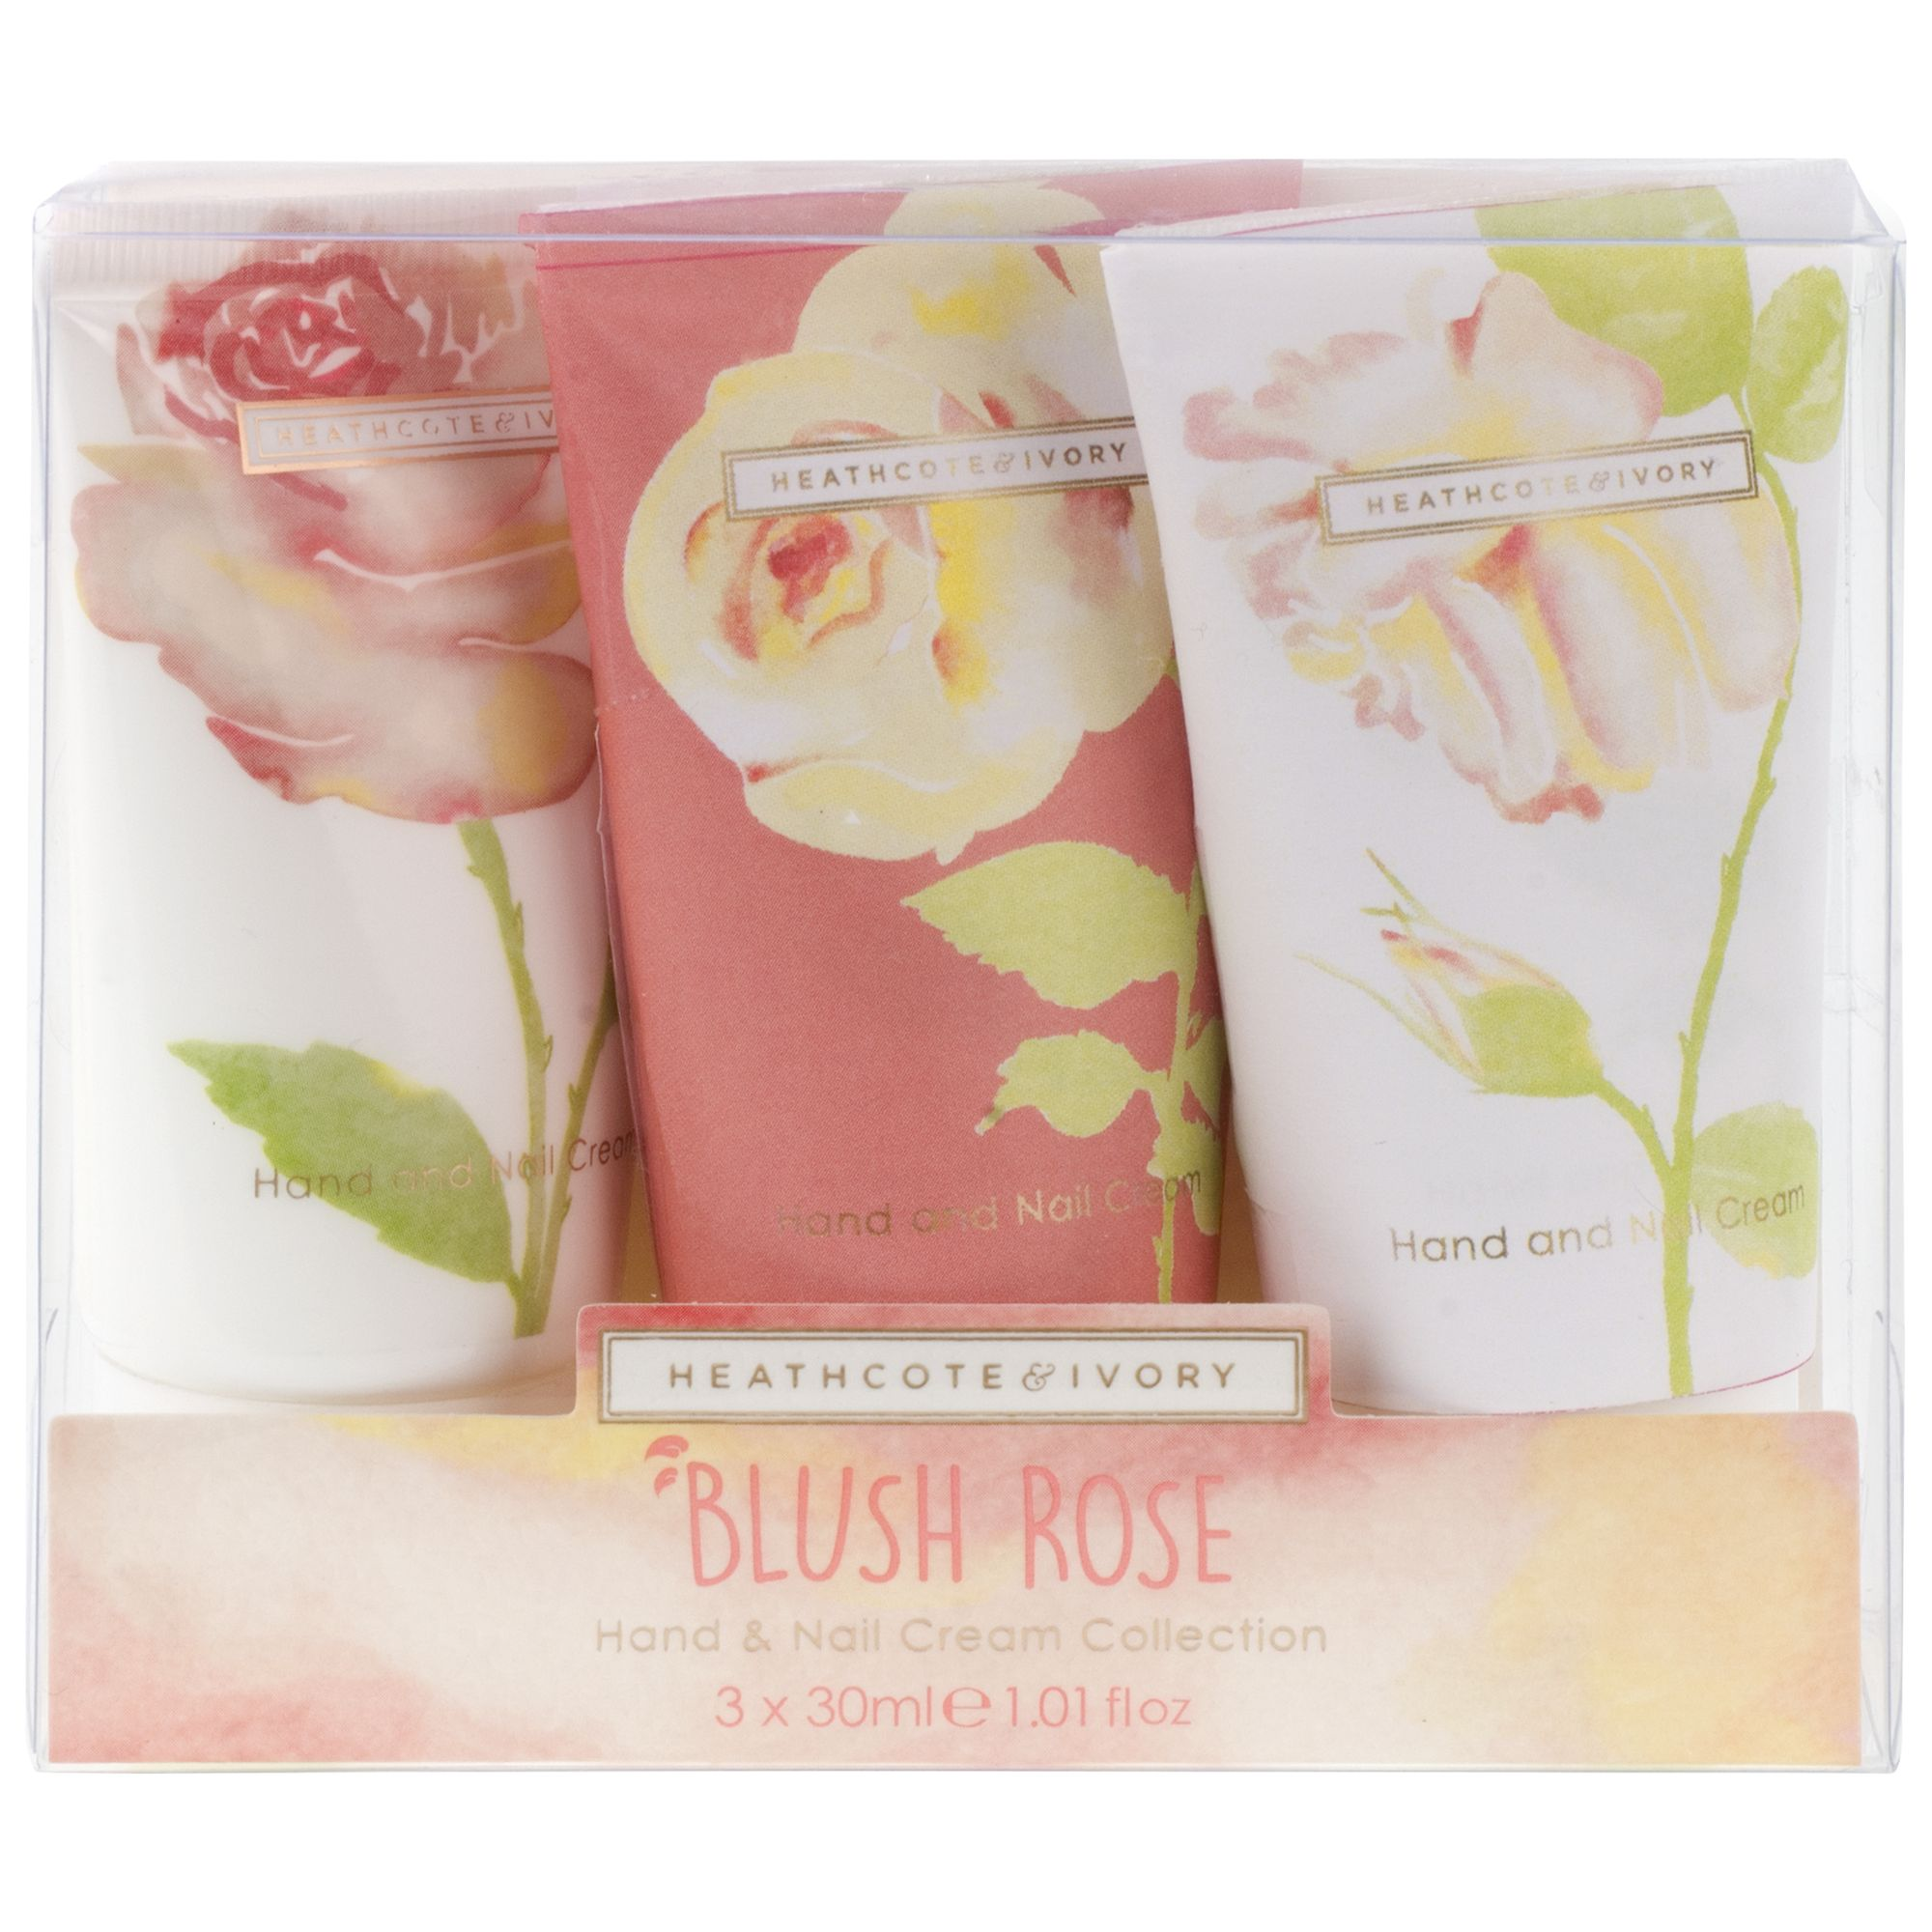 Heathcote & Ivory Heathcote & Ivory Blush Rose Hand & Nail Cream Collection